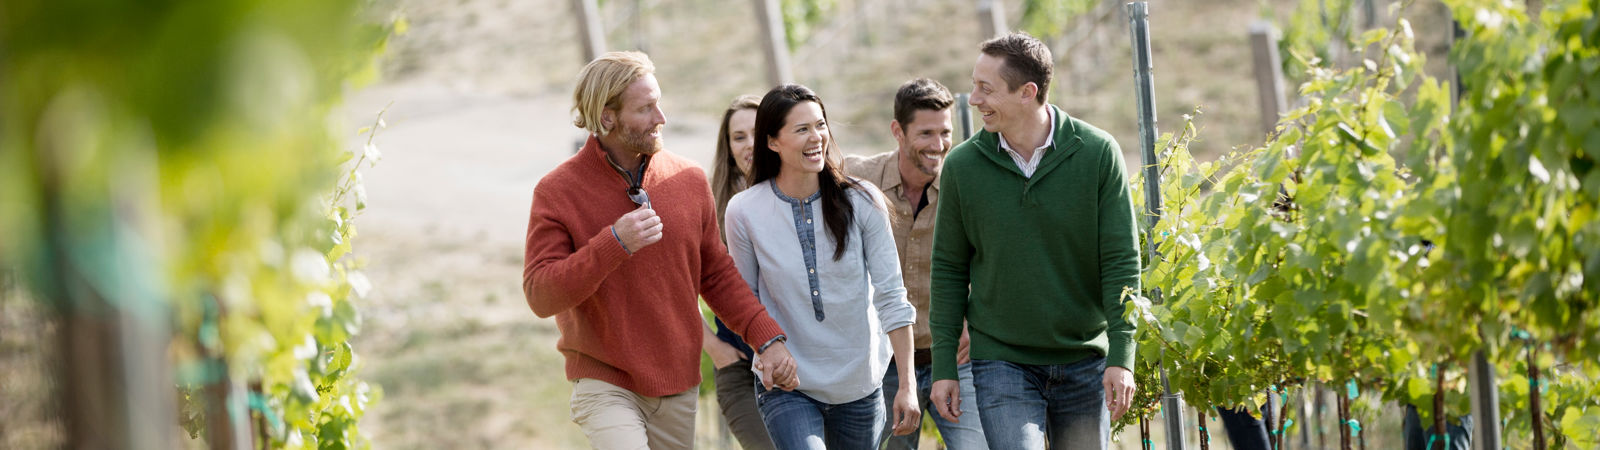 Carmel Valley Ranch_Lifestyle_vineyard walk with friends horizontal